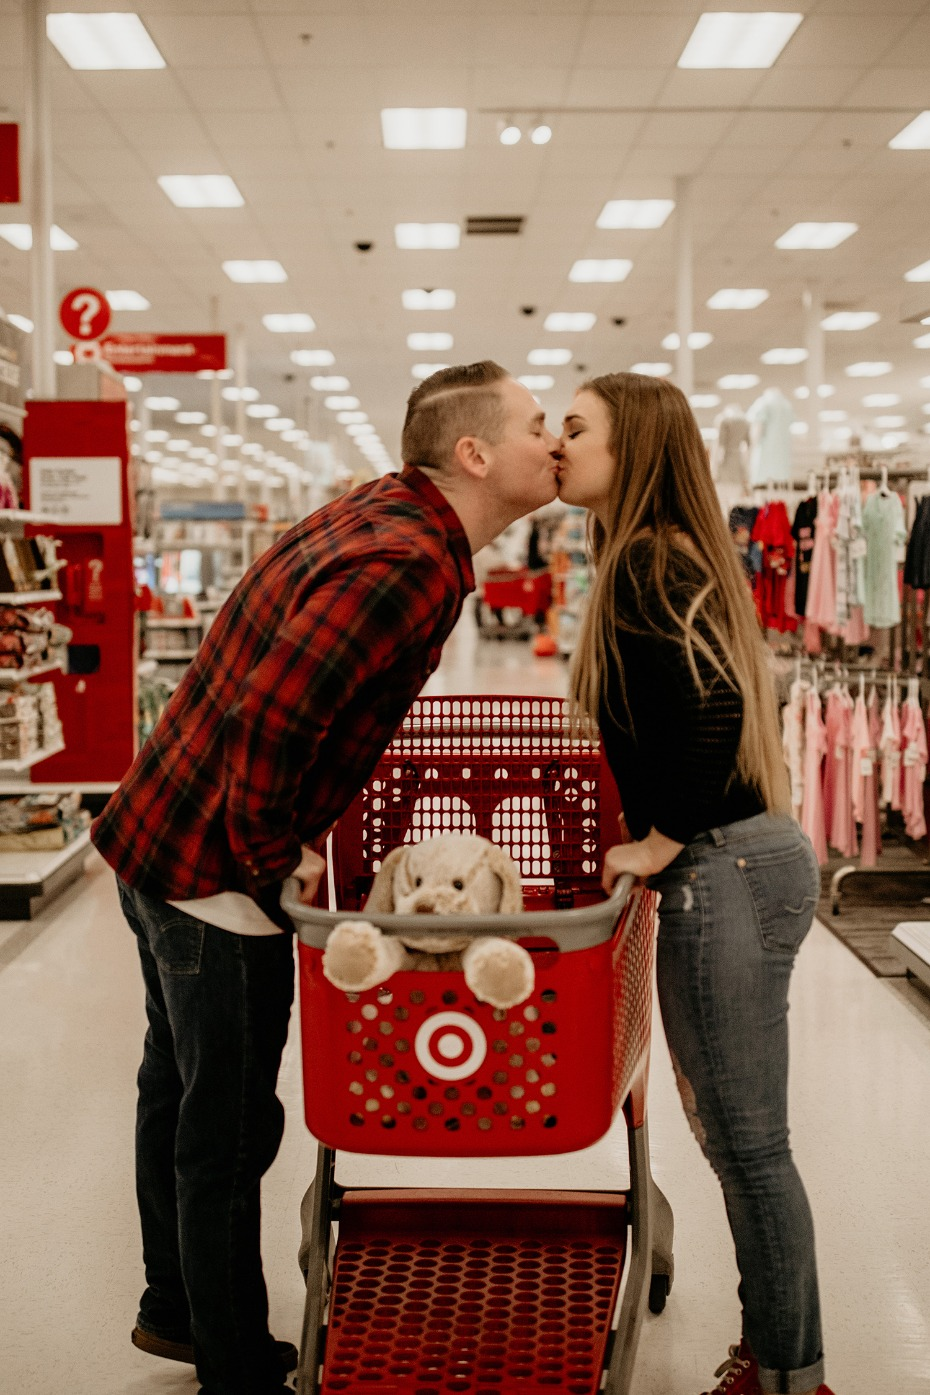 Cute Engagement shoot in Target